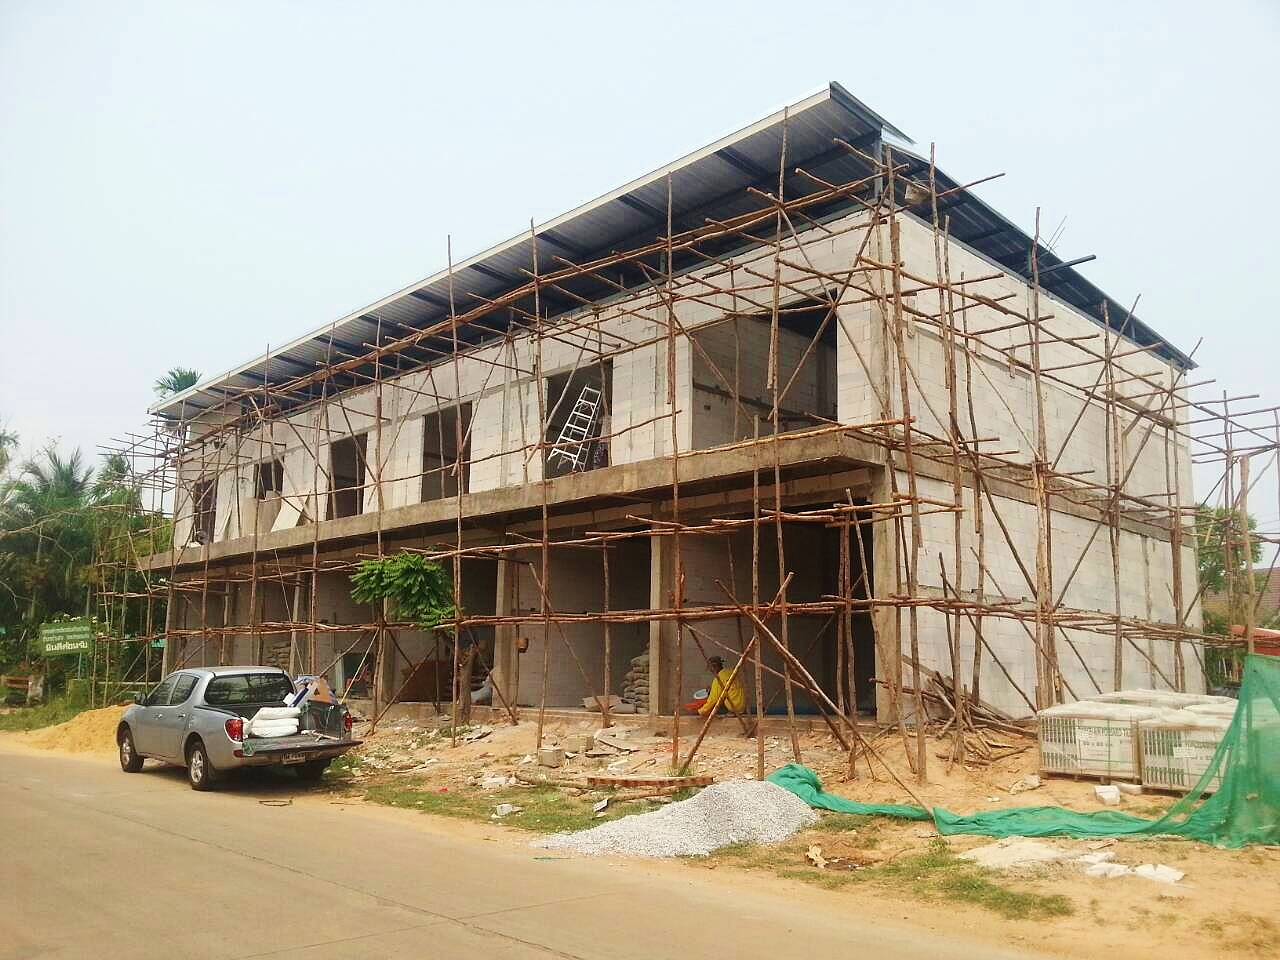 Townhouse construction in Khon Kaen